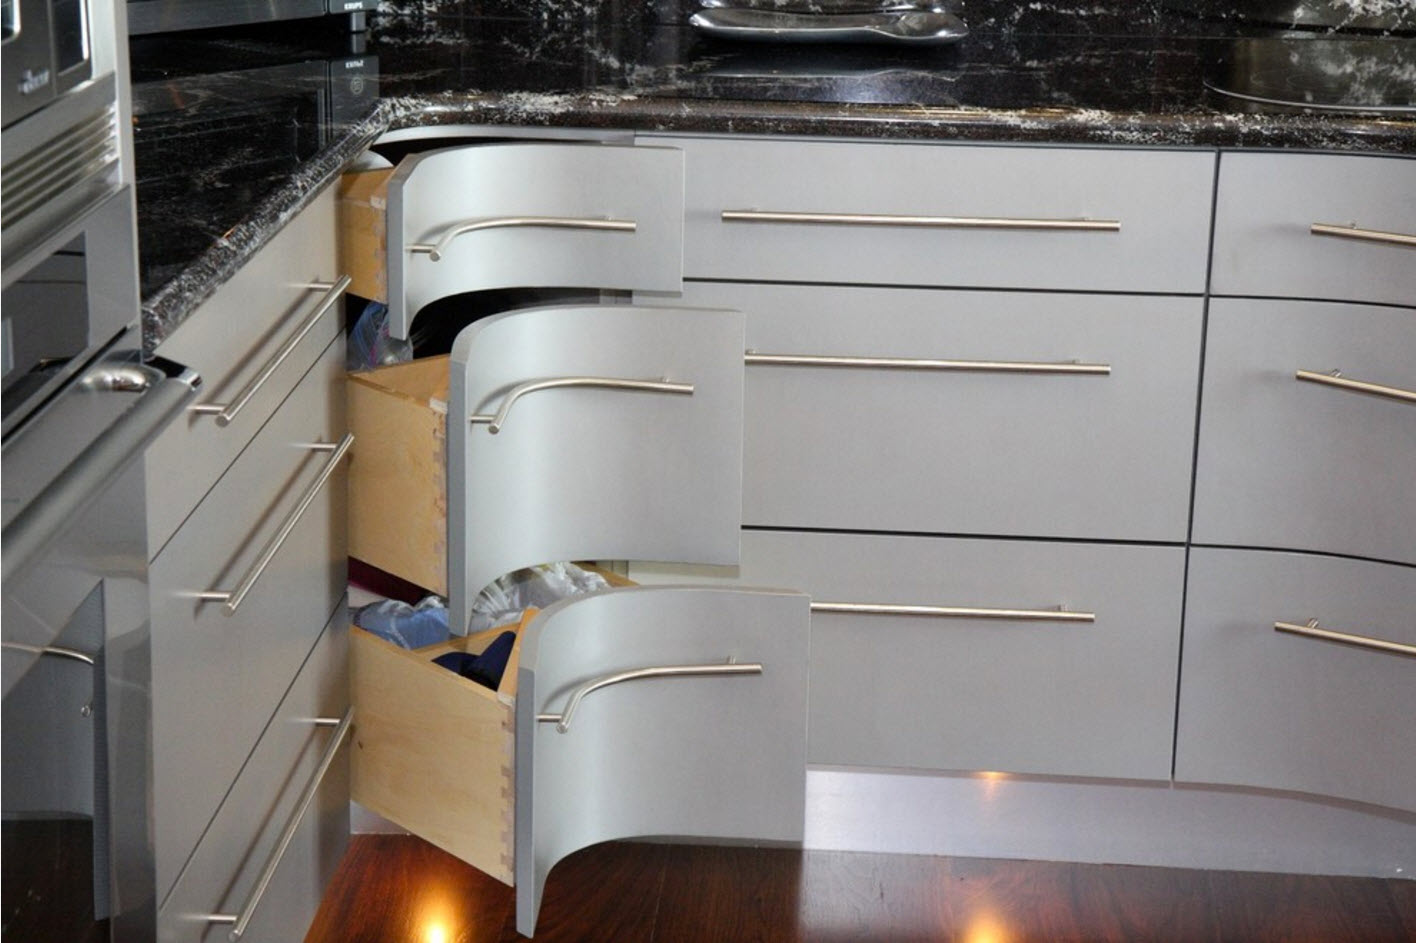 Oval shape top surfaces of the pullout kitchen drawers